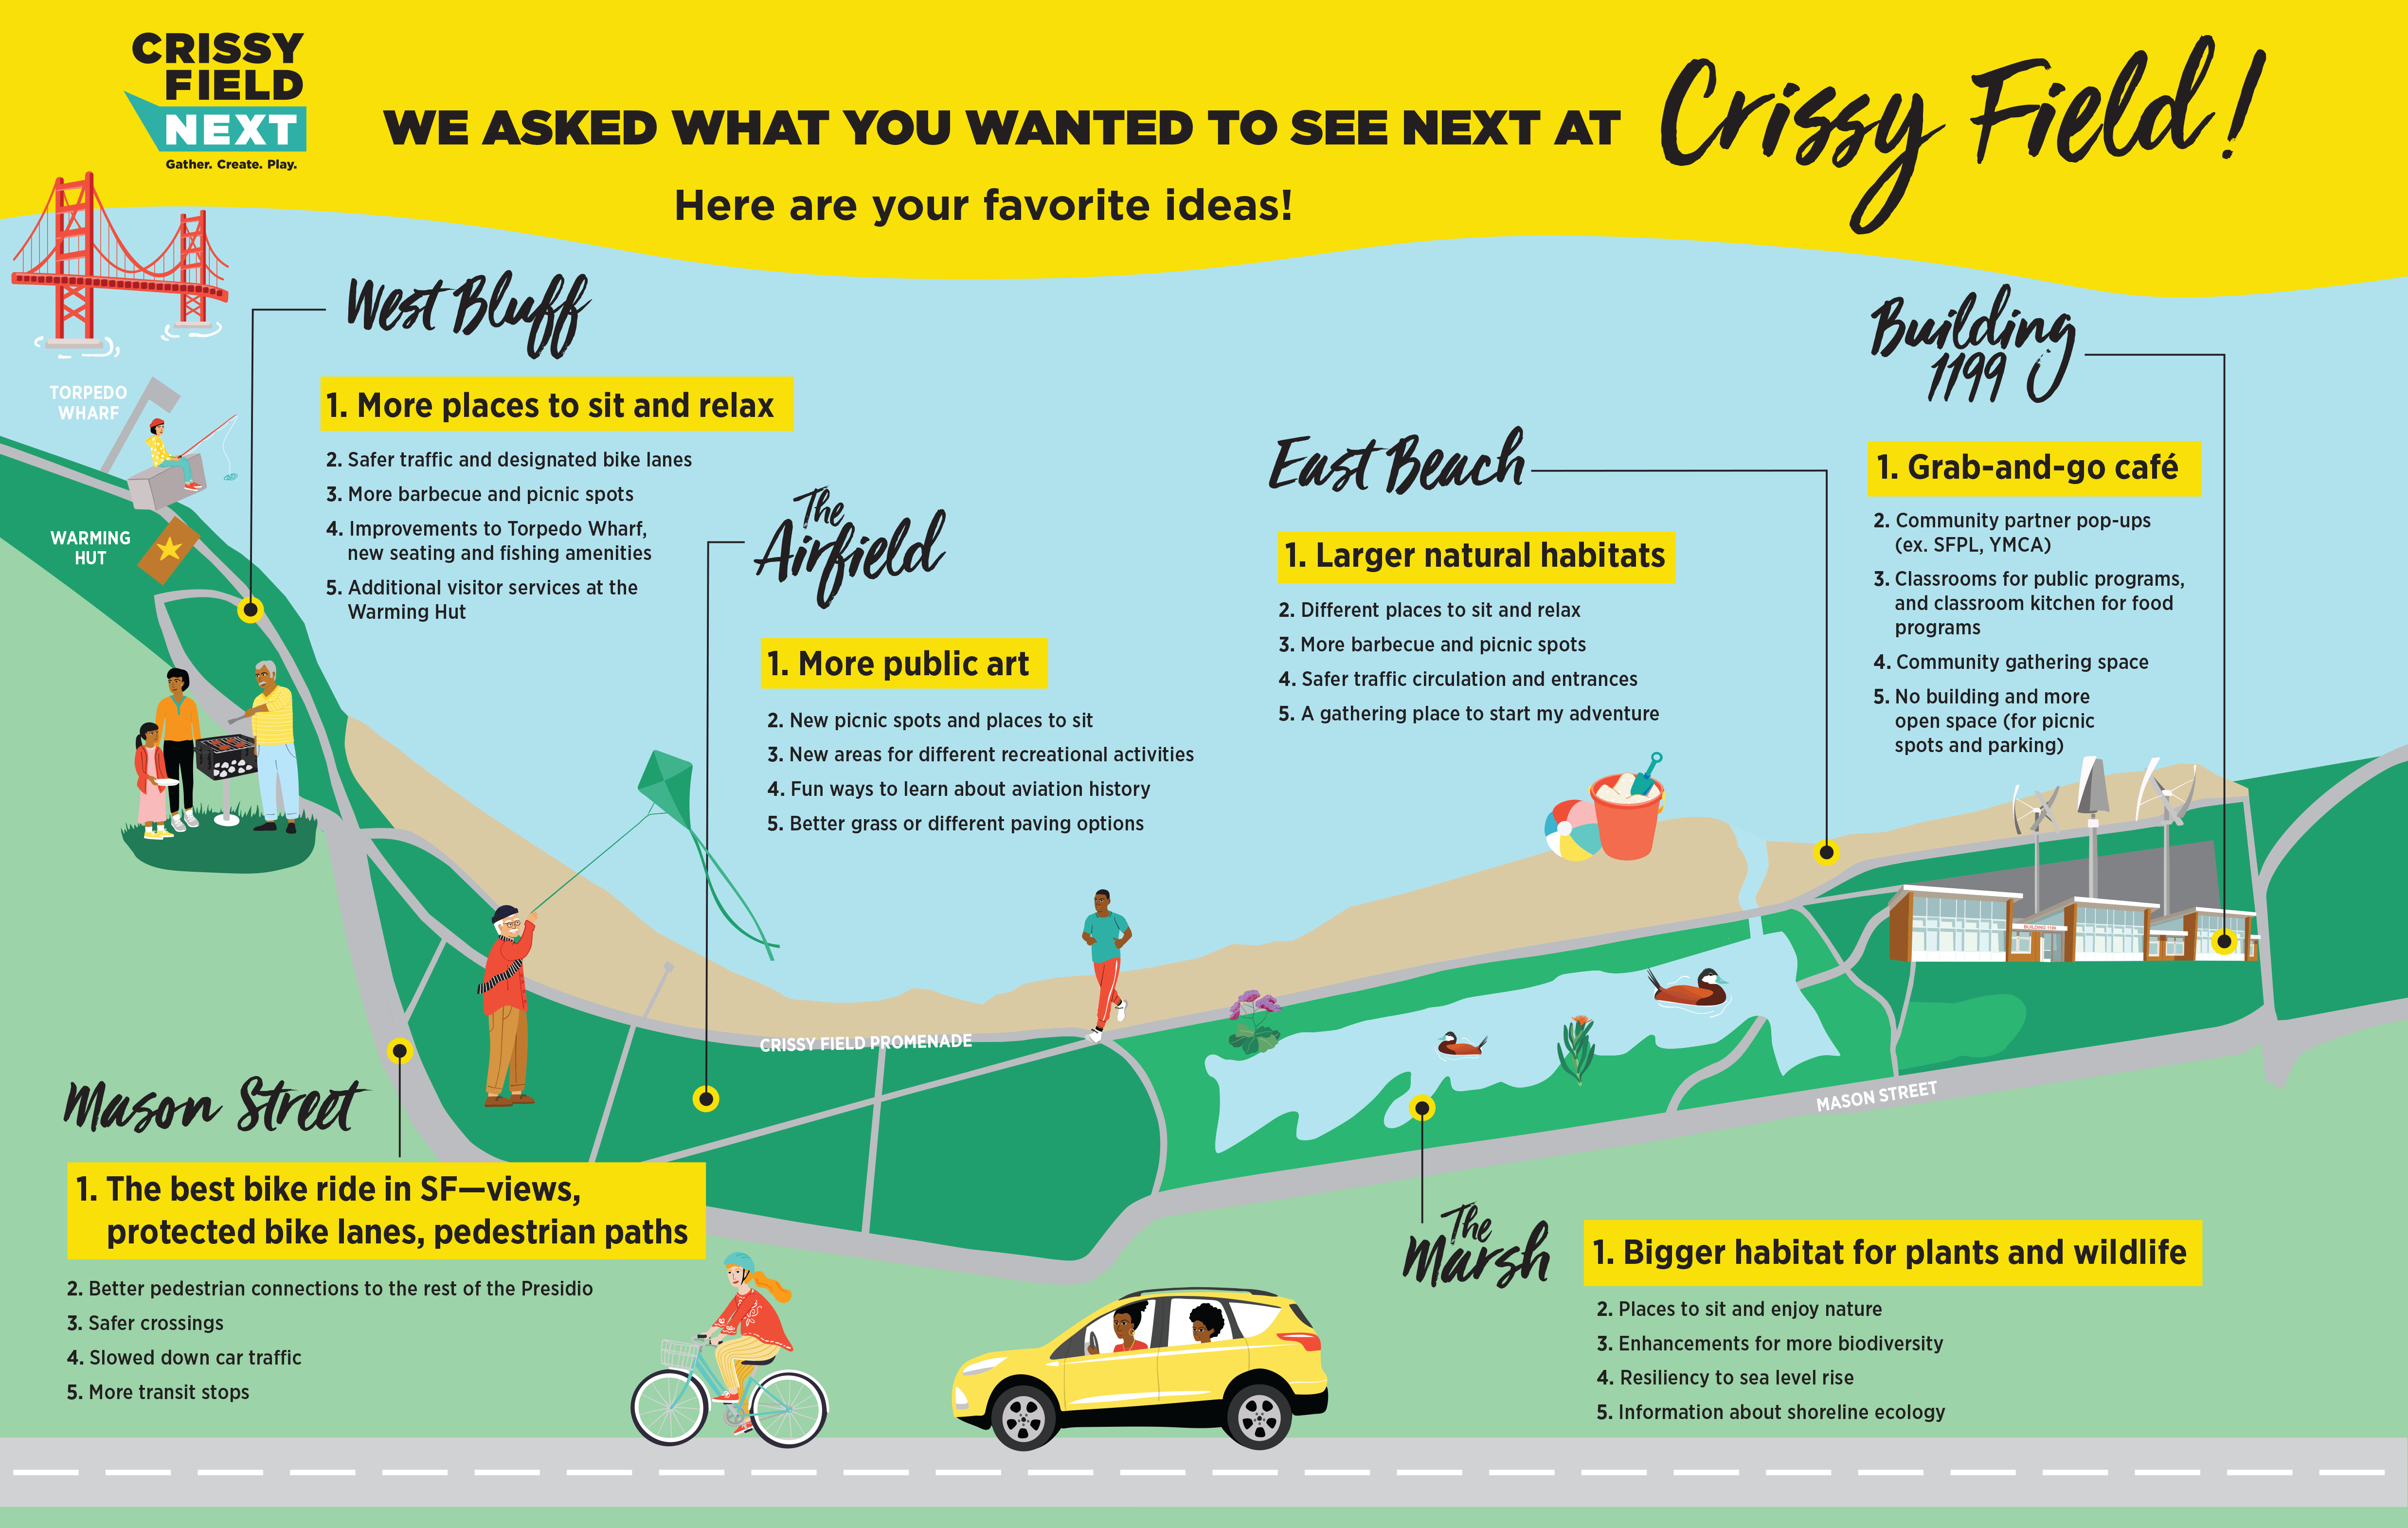 Cartoon-like map of Crissy Field area showing people doing activities and listing improvements suggested for different parts of the area